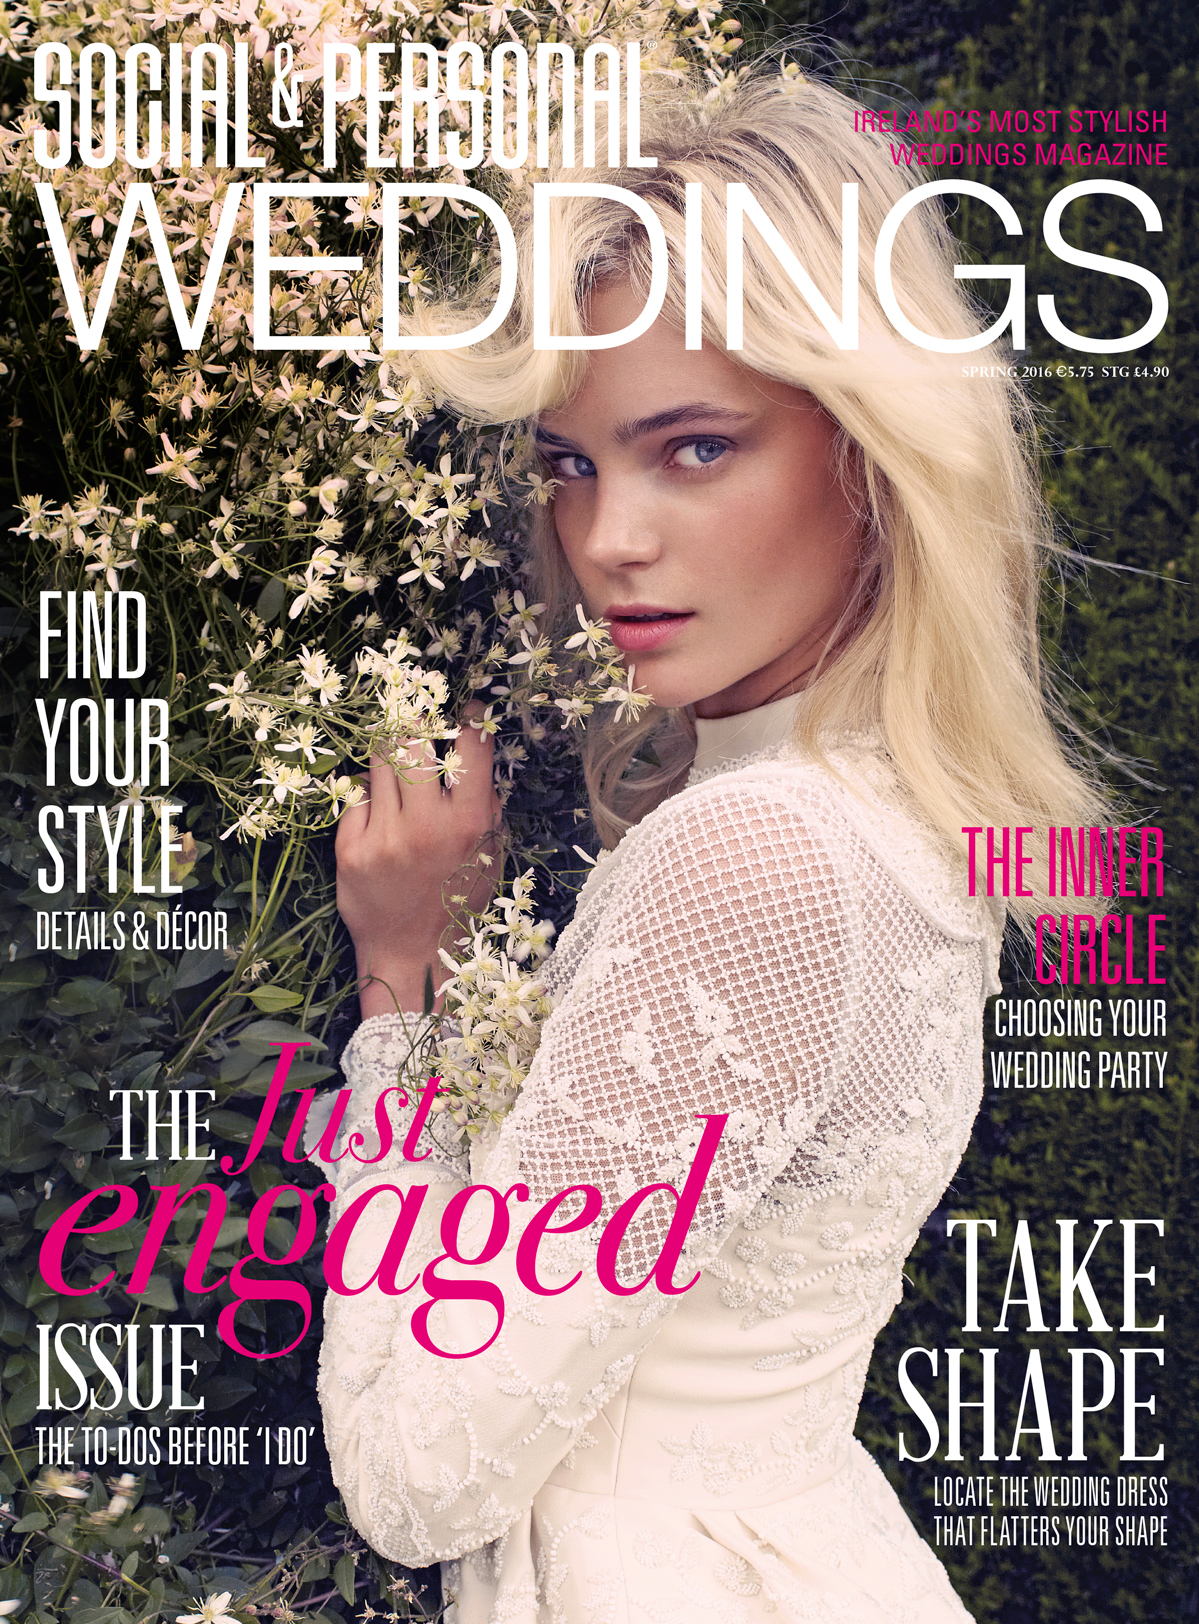 S&P Weddings spring issue